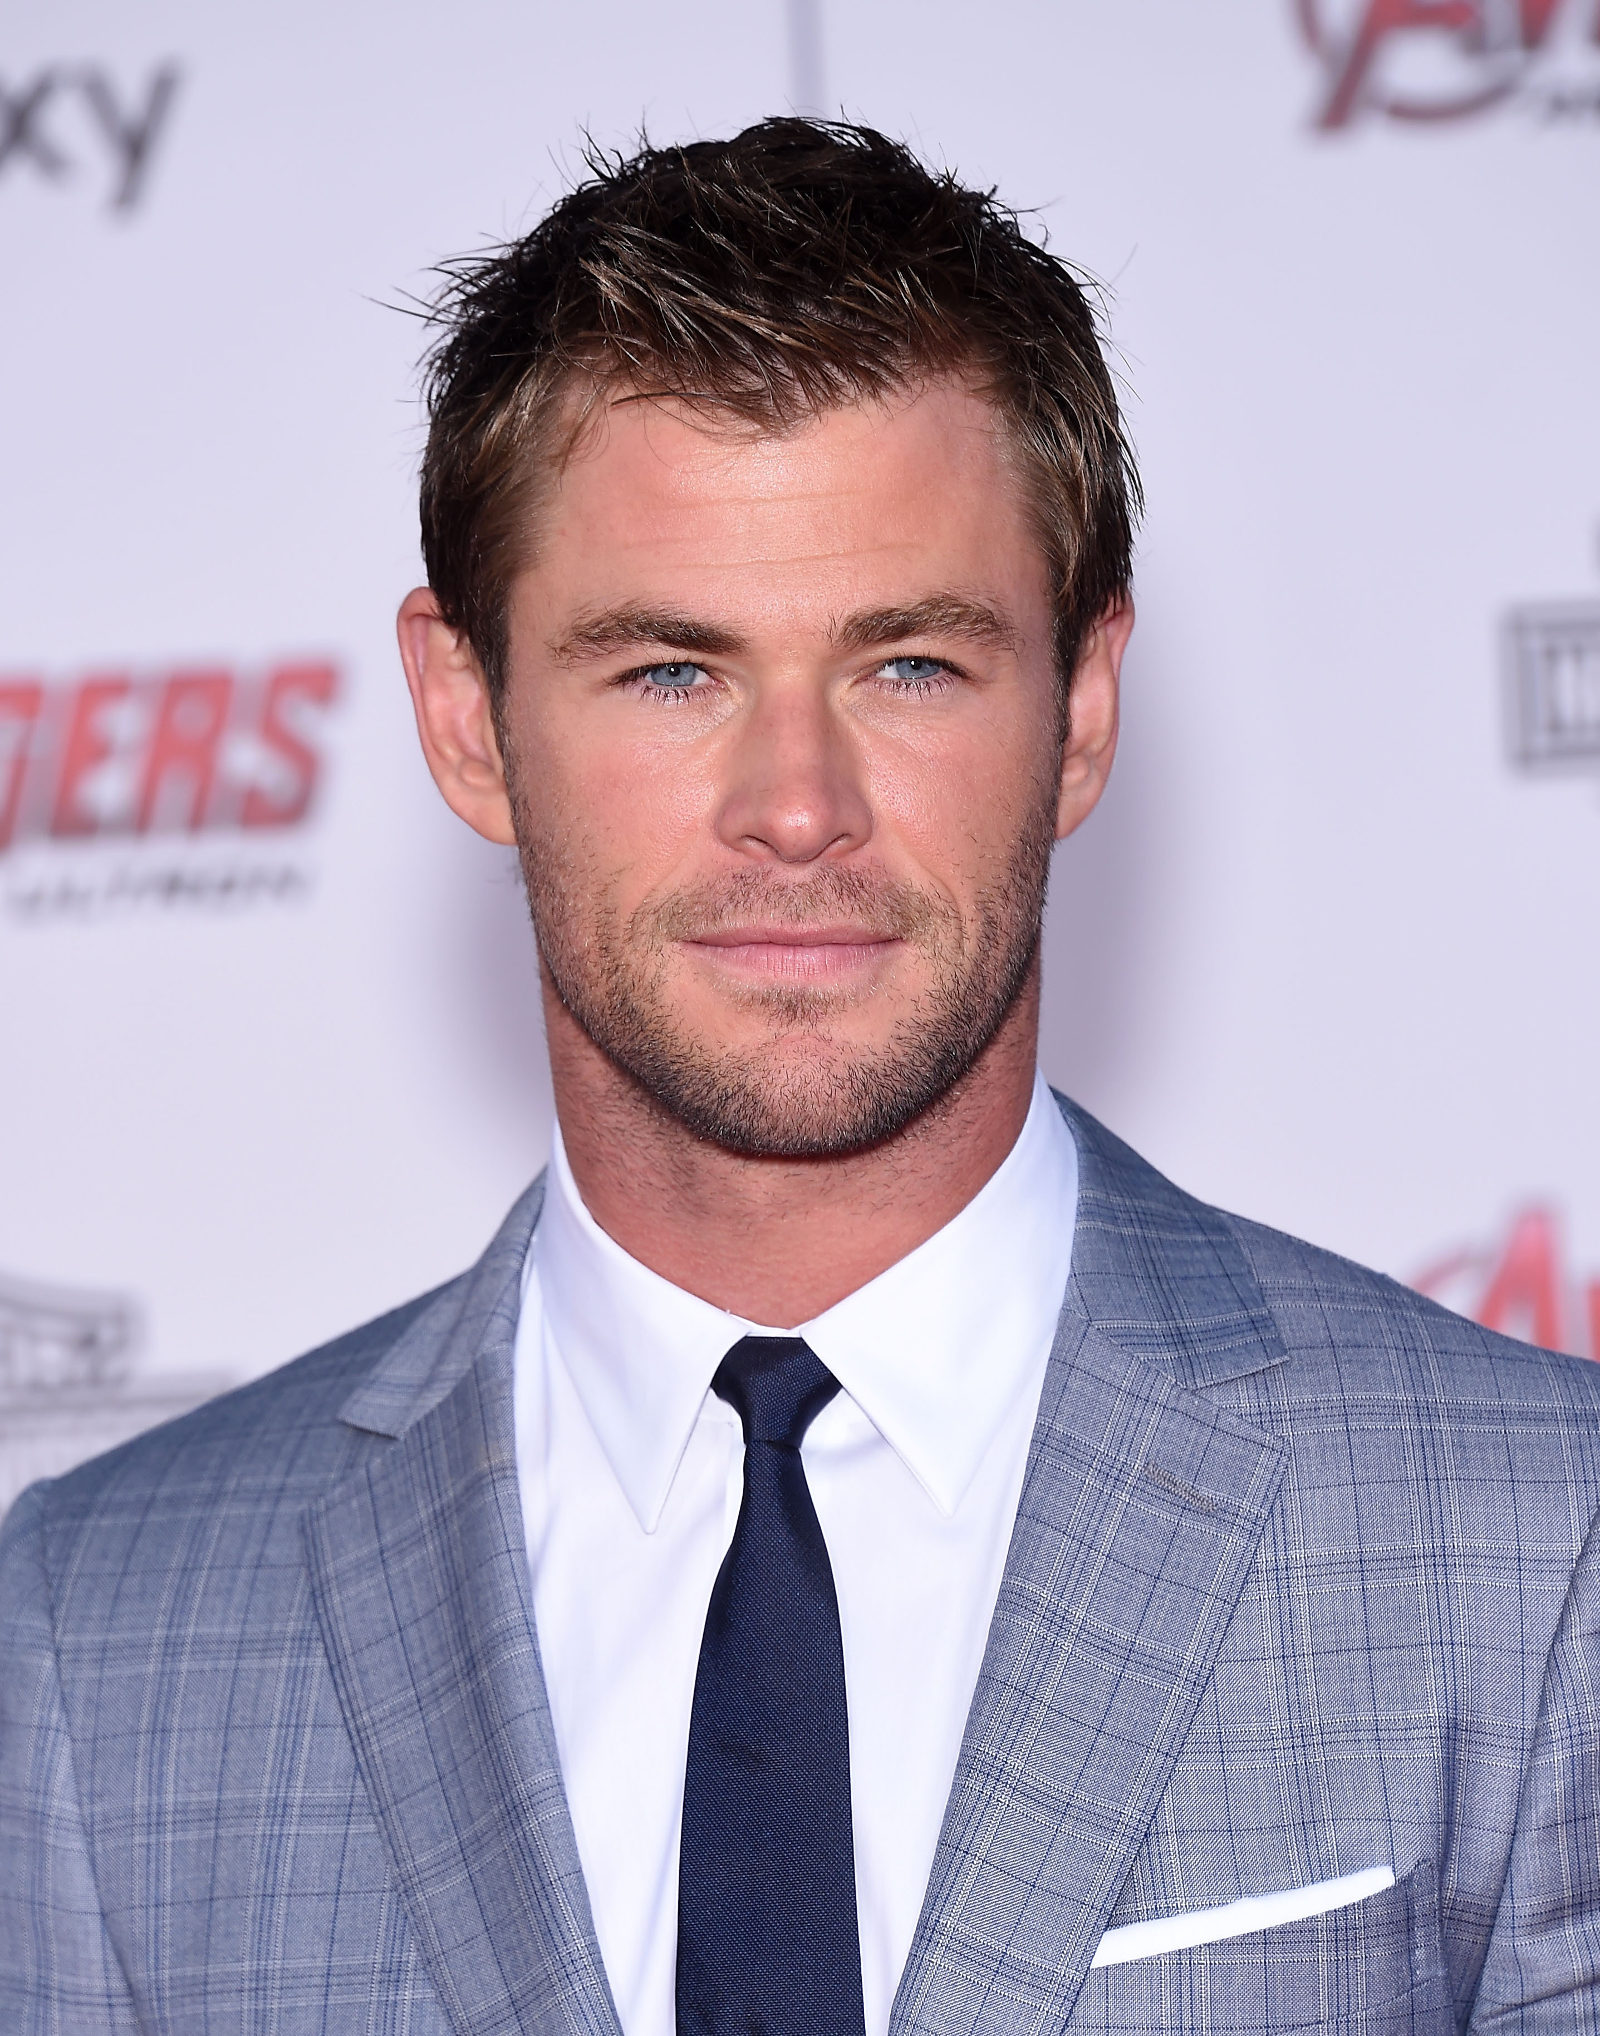 Elegant Chris Hemsworth   Widowu0027s Peak   Short Spiky Hairstyle